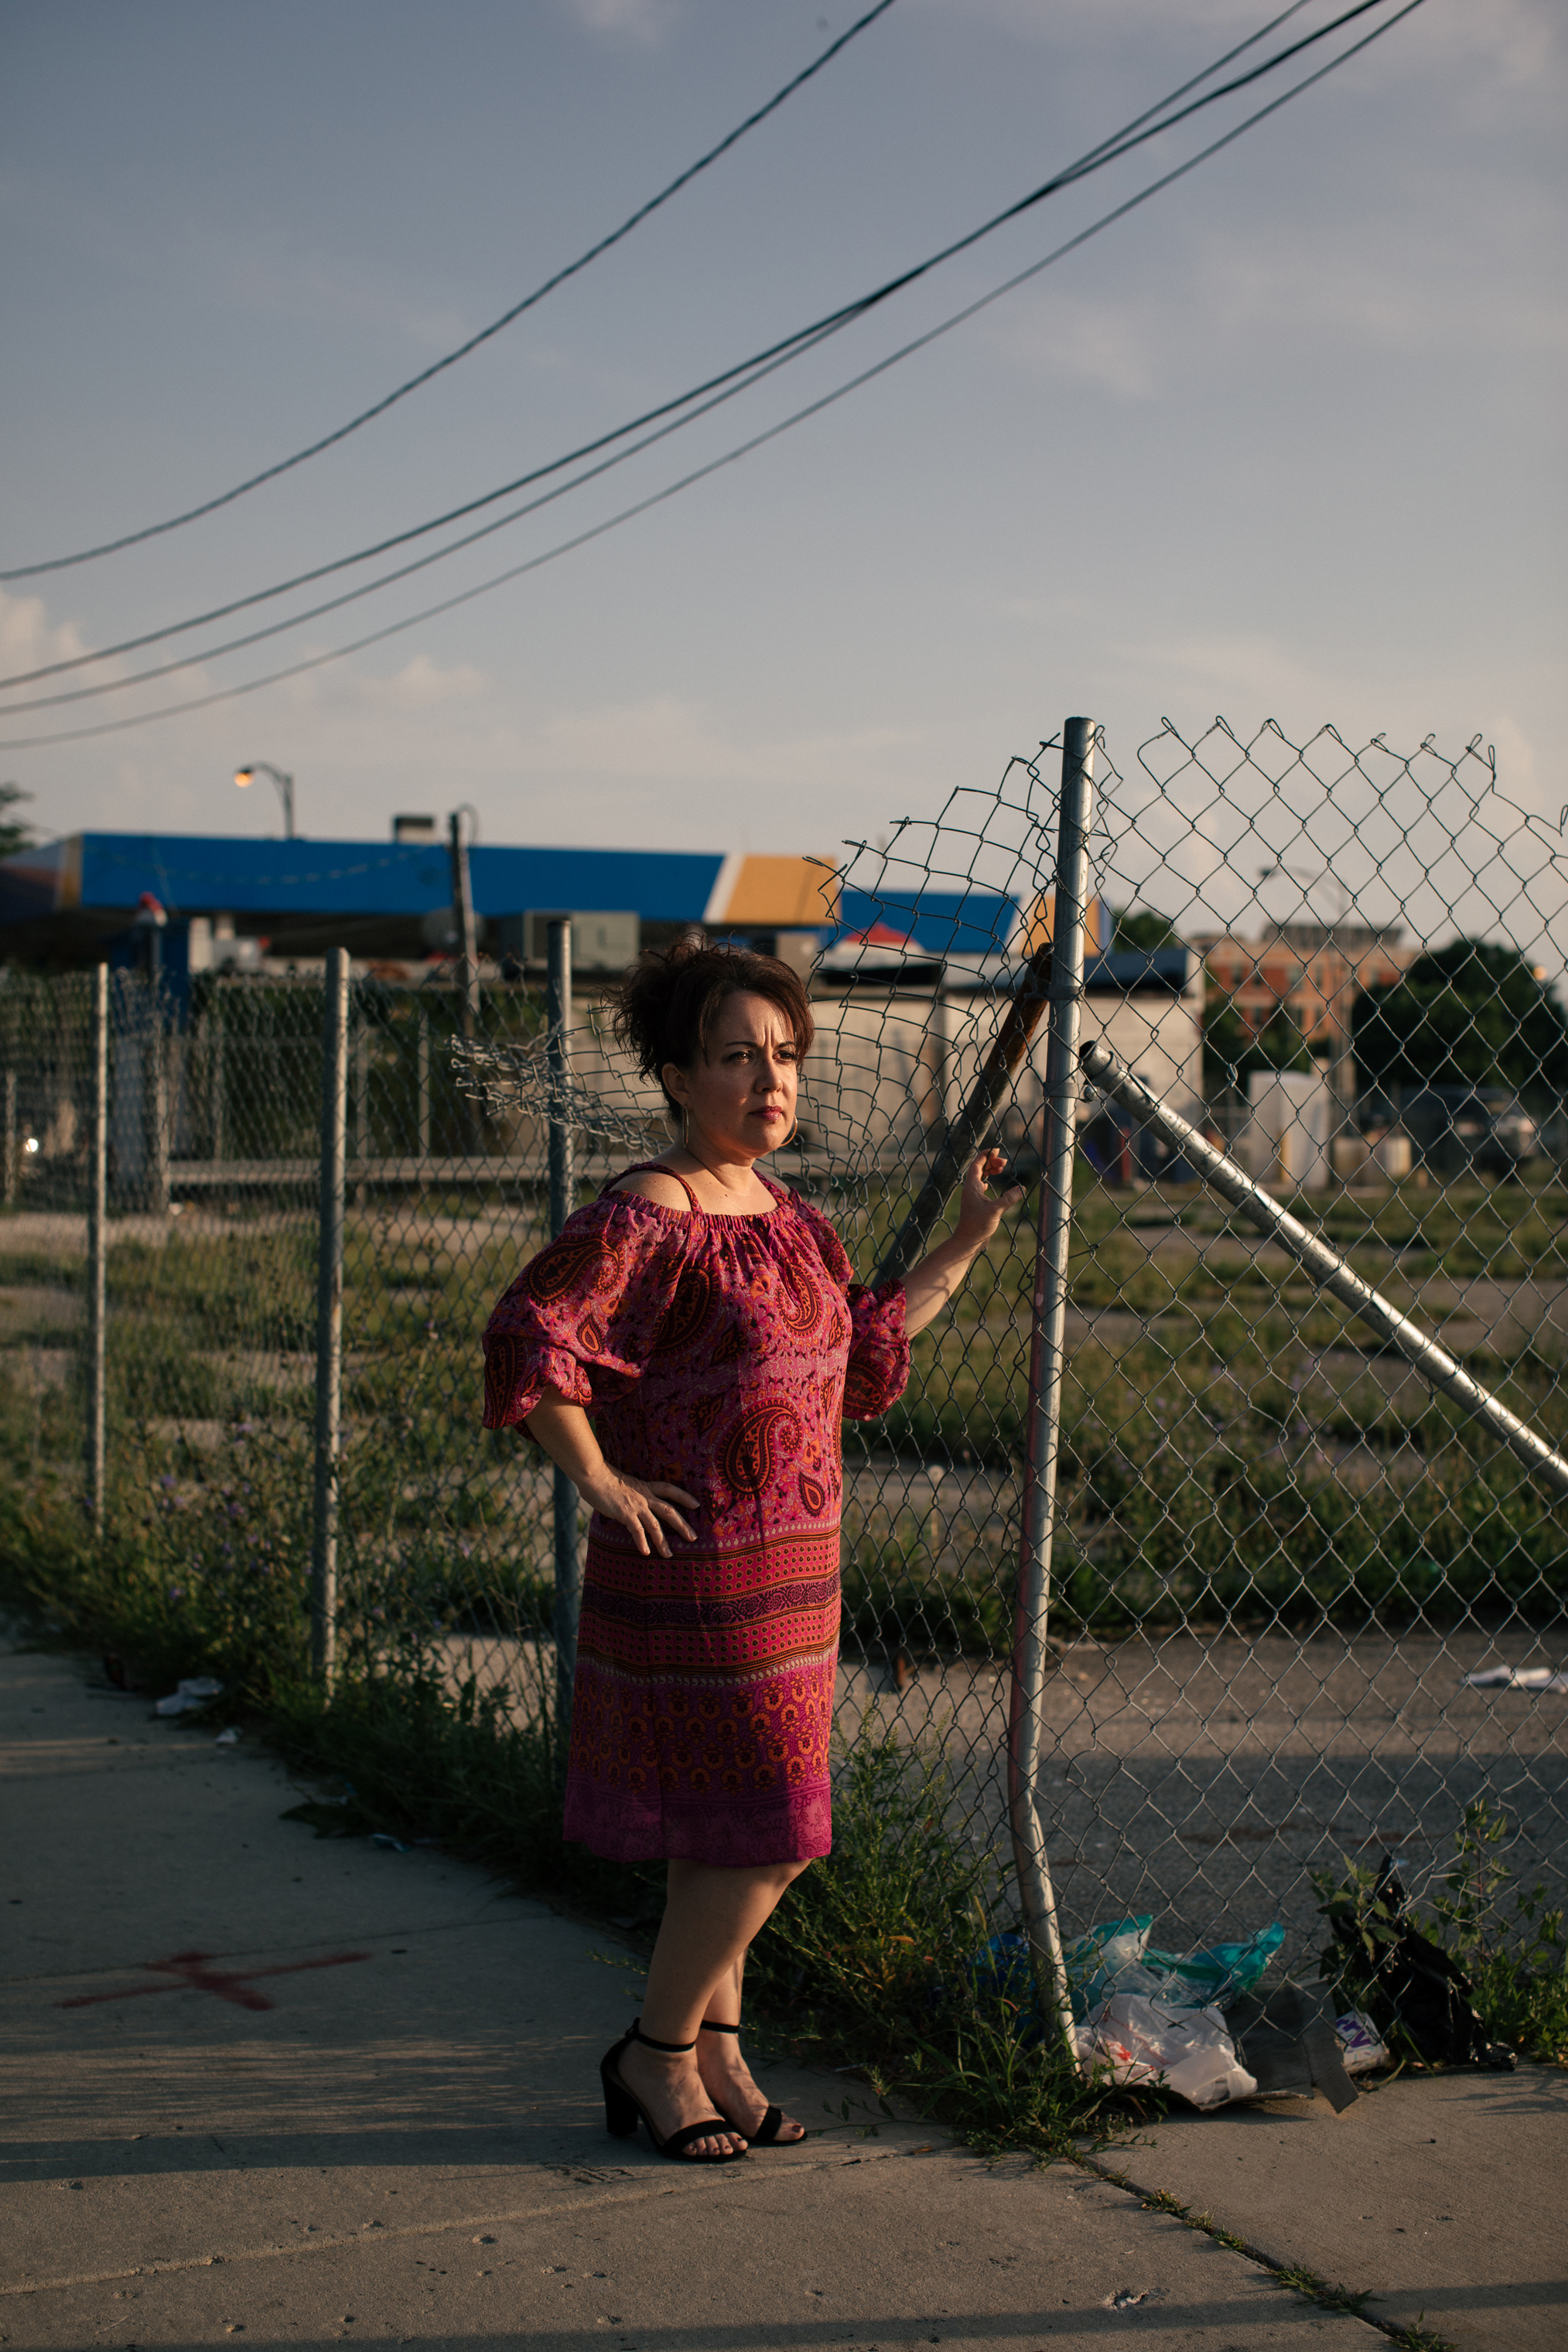 Juanita Irizarry, the Executive Director of Friends of the Parks, poses next to empty lots adjacent to Washington Park on Chicago's South Side. Several lots in the area are empty, and businesses, like the Amstar gas station, could be sold to make way for the Obama Presidential Center.